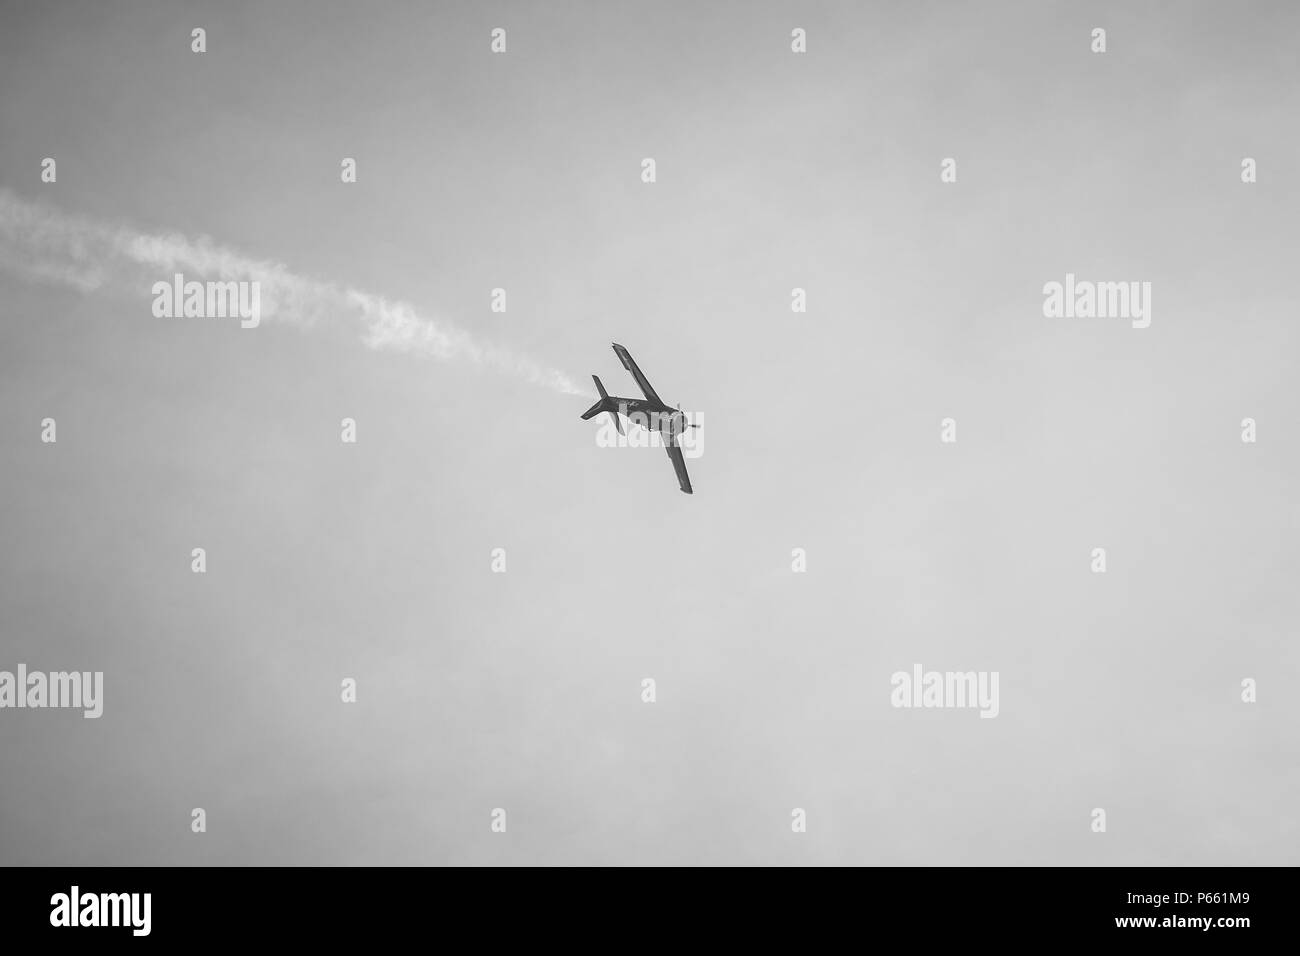 BERLIN - APRIL 27, 2018: Demonstration flight of light attack/trainer aircraft North American T-28B Trojan. Black and white. Exhibition ILA Berlin Air - Stock Image